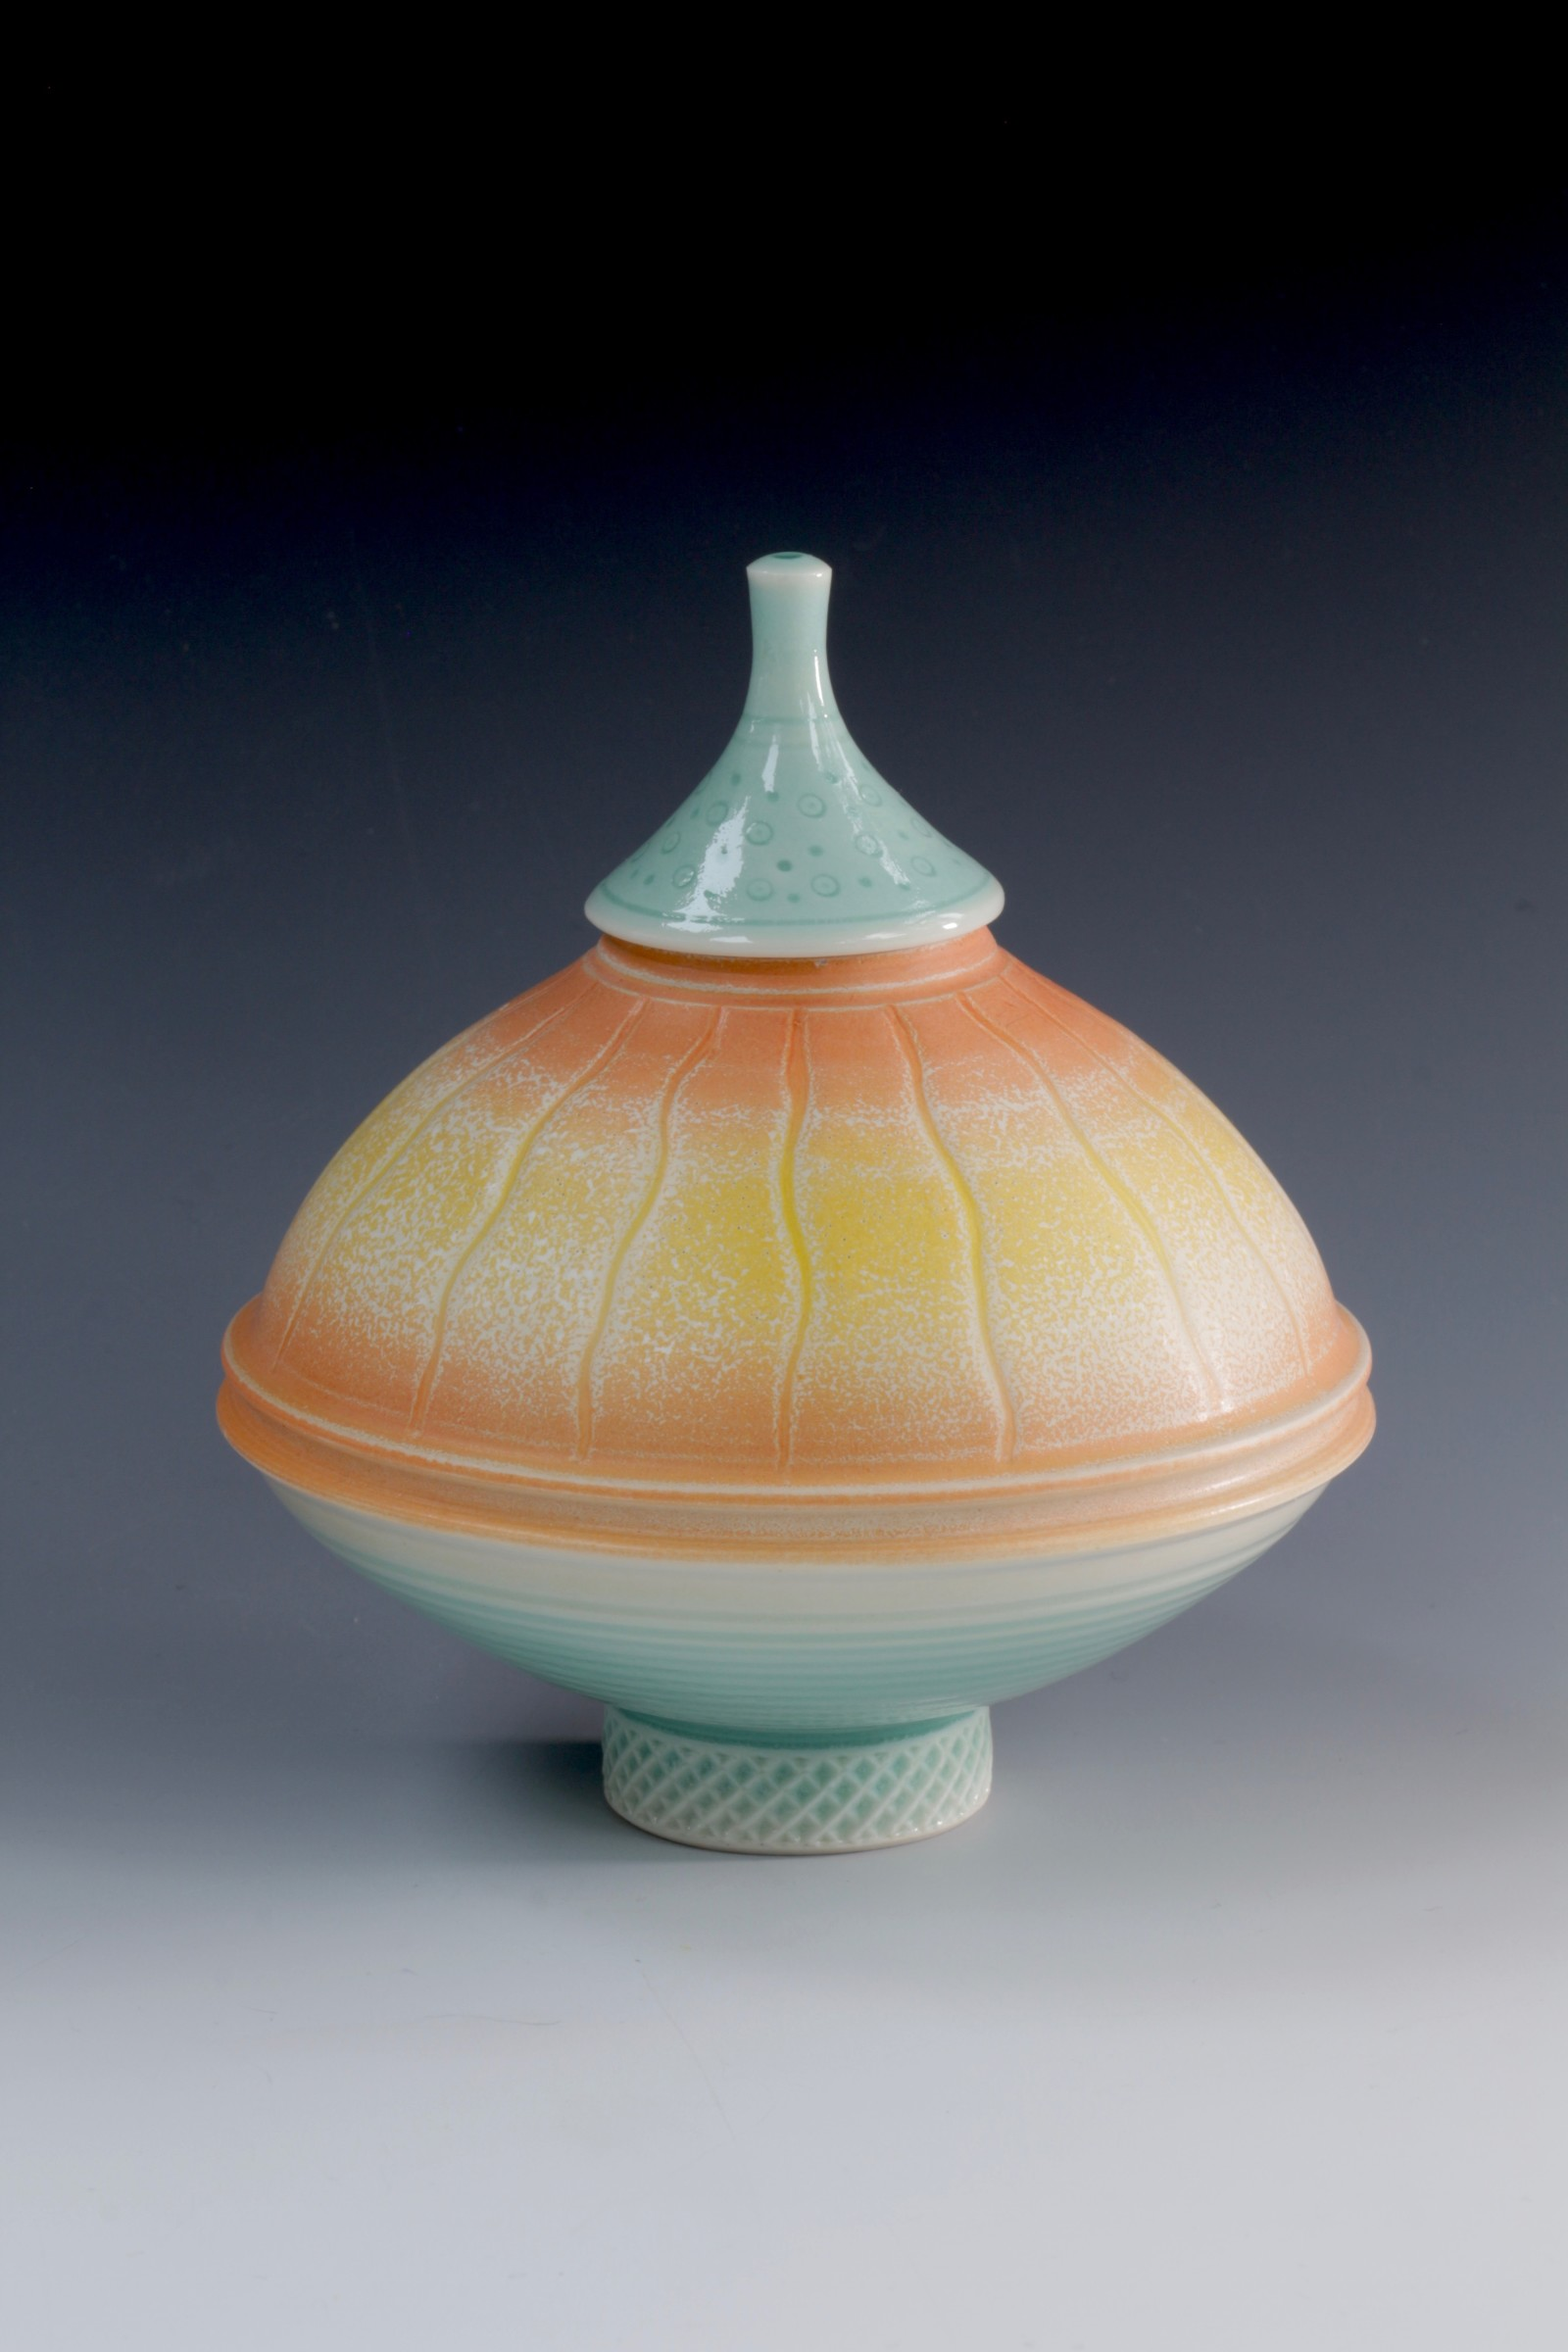 "<span class=""link fancybox-details-link""><a href=""/artists/61-geoffrey-swindell/works/6906-geoffrey-swindell-lidded-pot-2020/"">View Detail Page</a></span><div class=""artist""><strong>Geoffrey Swindell</strong></div> <div class=""title""><em>Lidded Pot</em>, 2020</div> <div class=""medium"">Porcelain</div><div class=""price"">£185.00</div><div class=""copyright_line"">Copyright The Artist</div>"